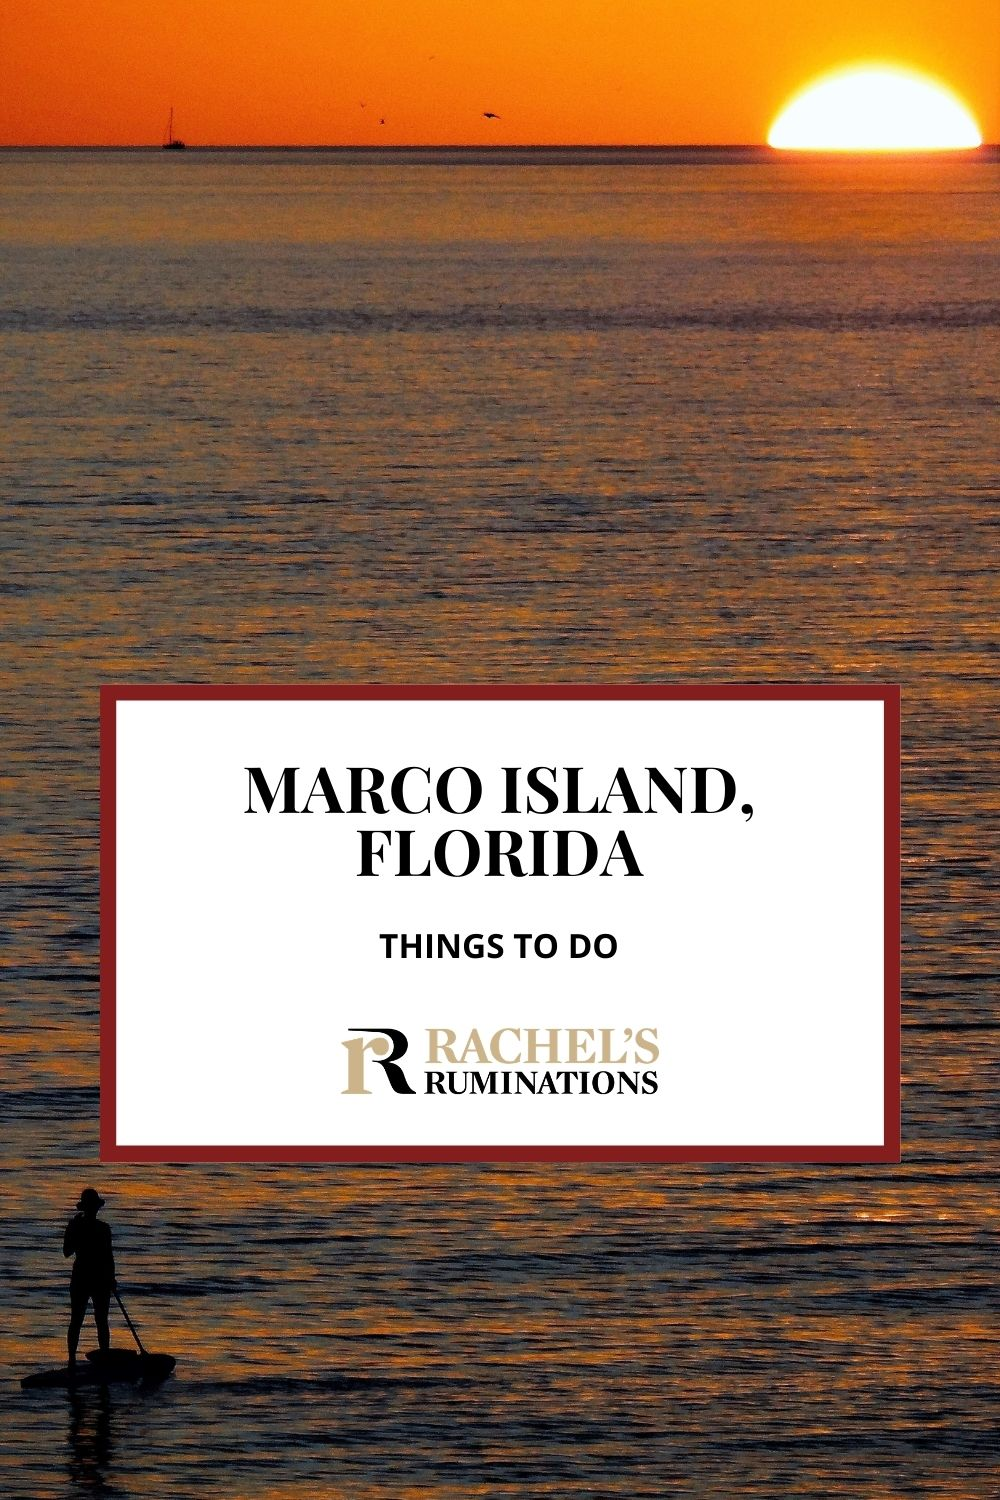 Looking for things to do on Marco Island in Florida? Read here for some ideas: things to see and do once you've had enough of lazing on the beach! via @rachelsruminations